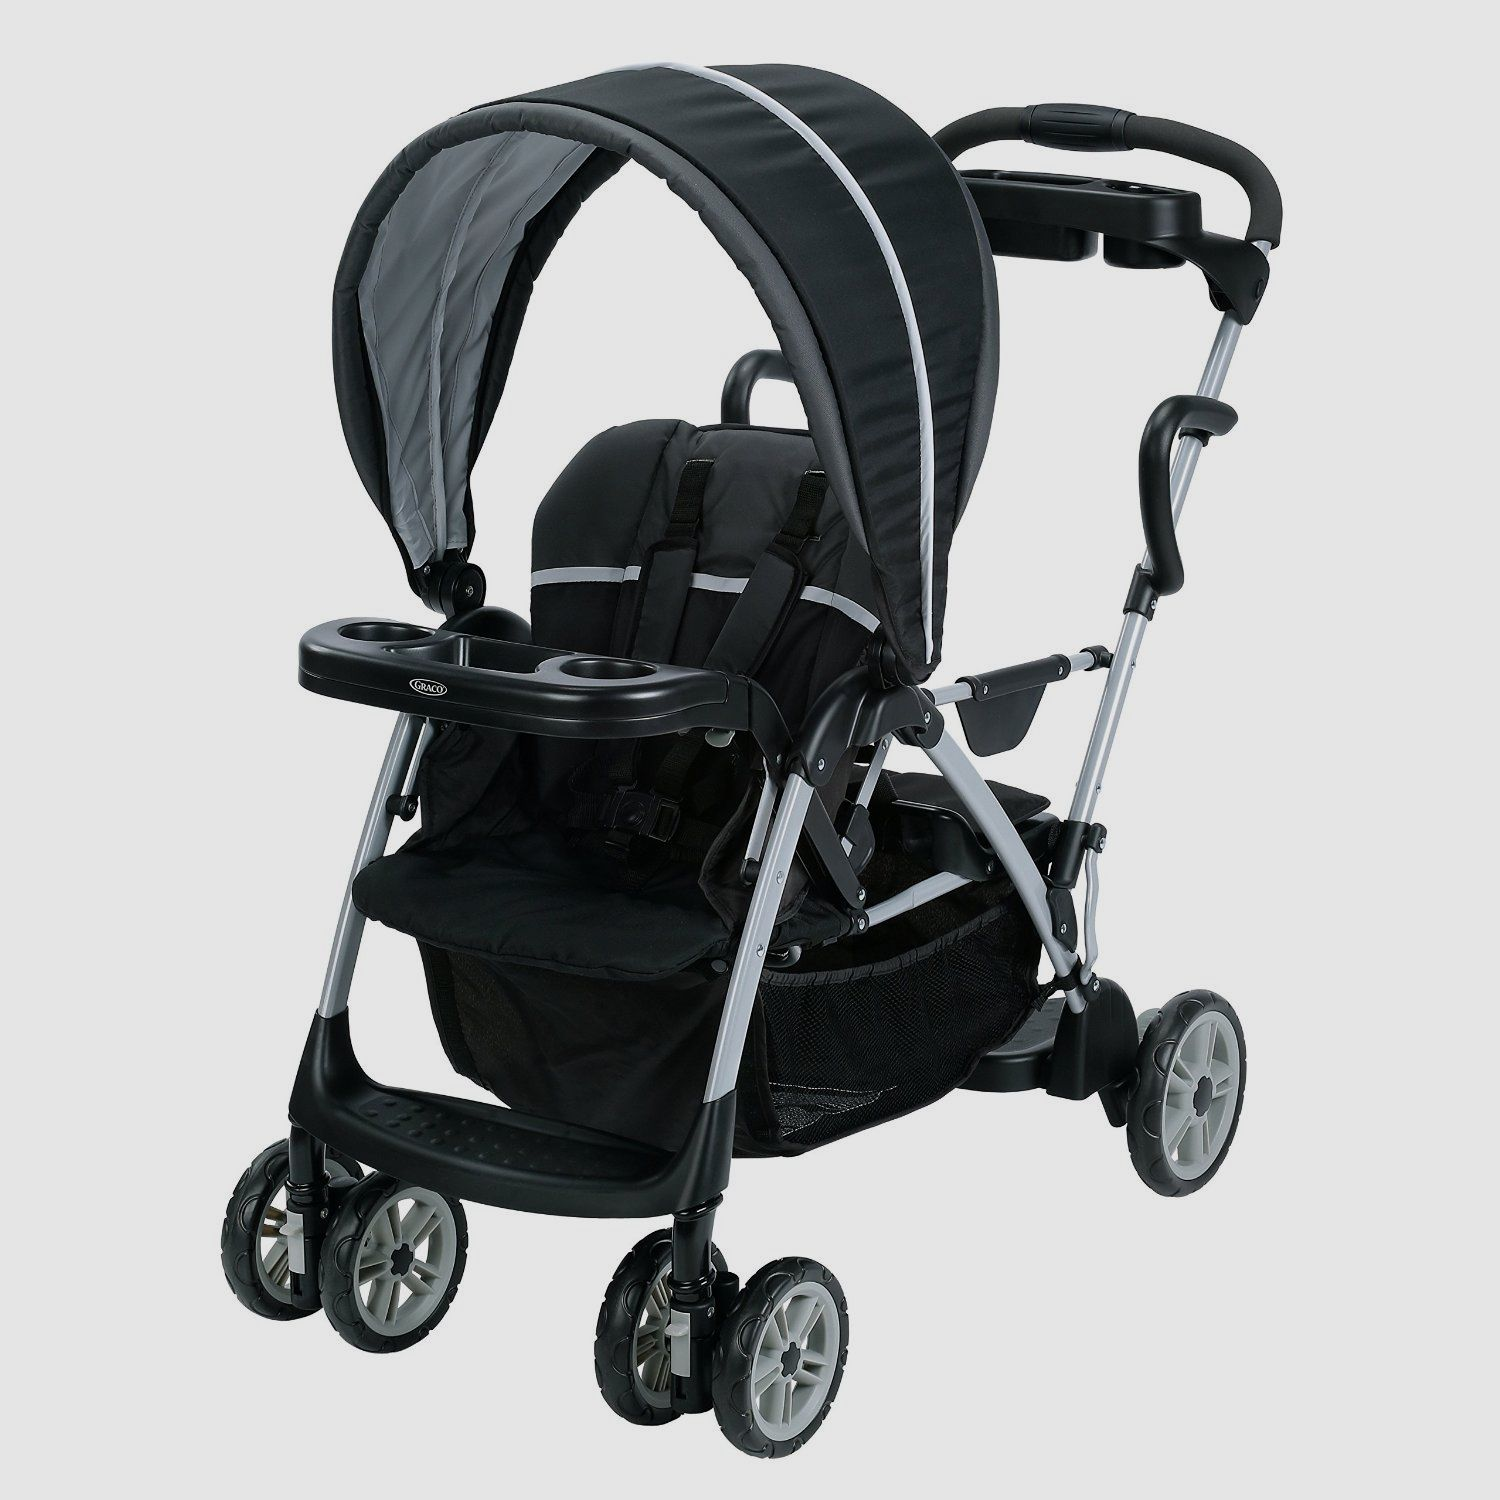 The place to find the best Twin umbrella stroller http